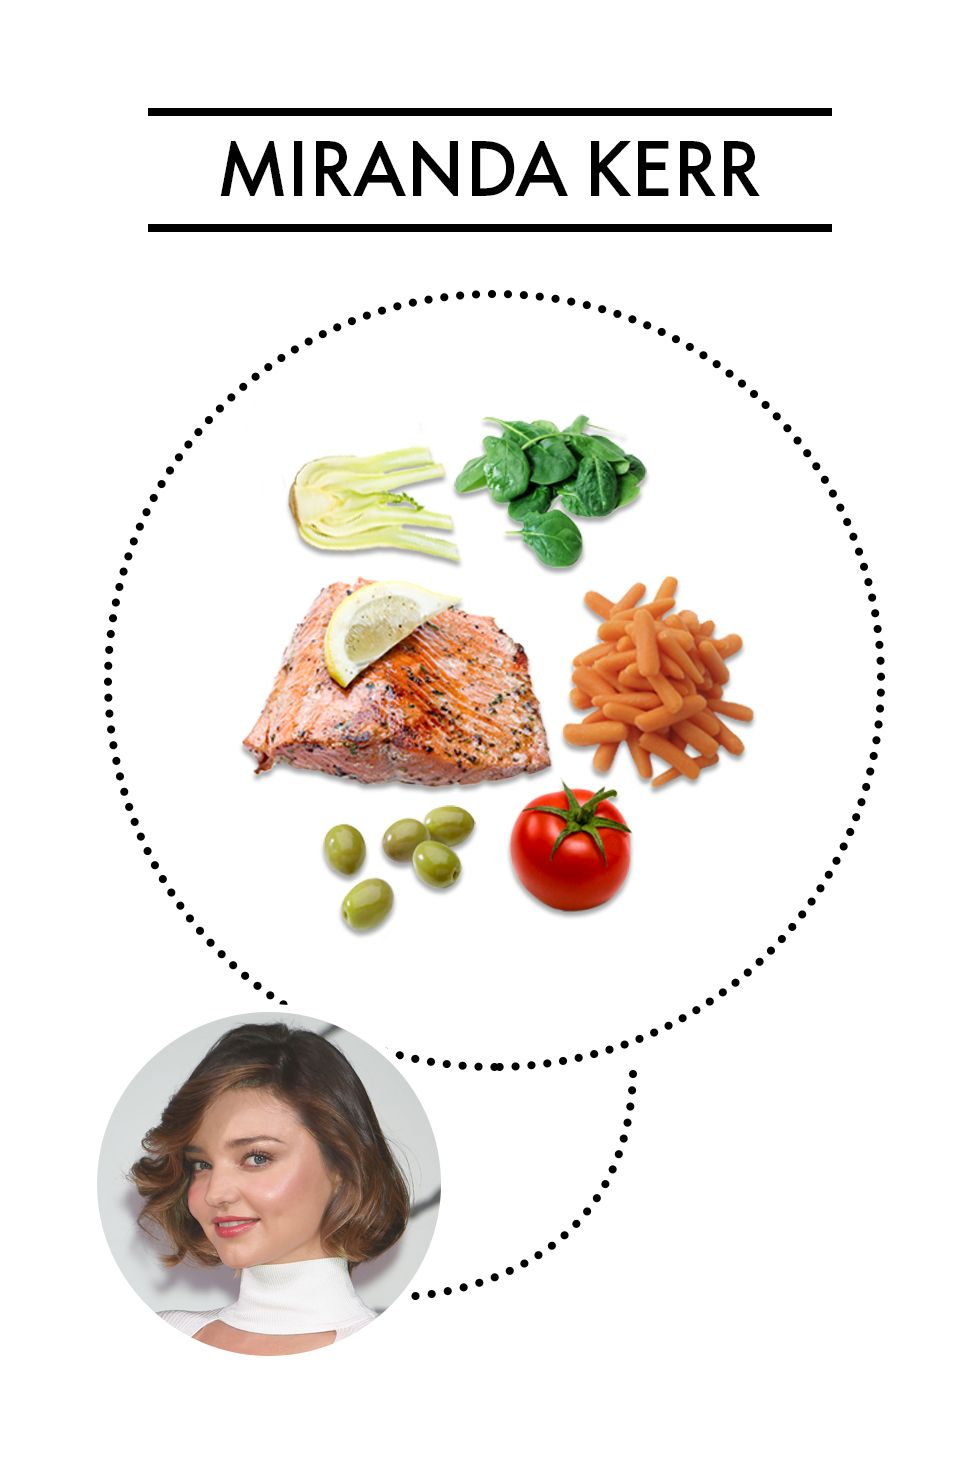 Miranda Kerr's fav salad: Grilled wild salmon, spinach, fennel, green olives, tomato, carrots